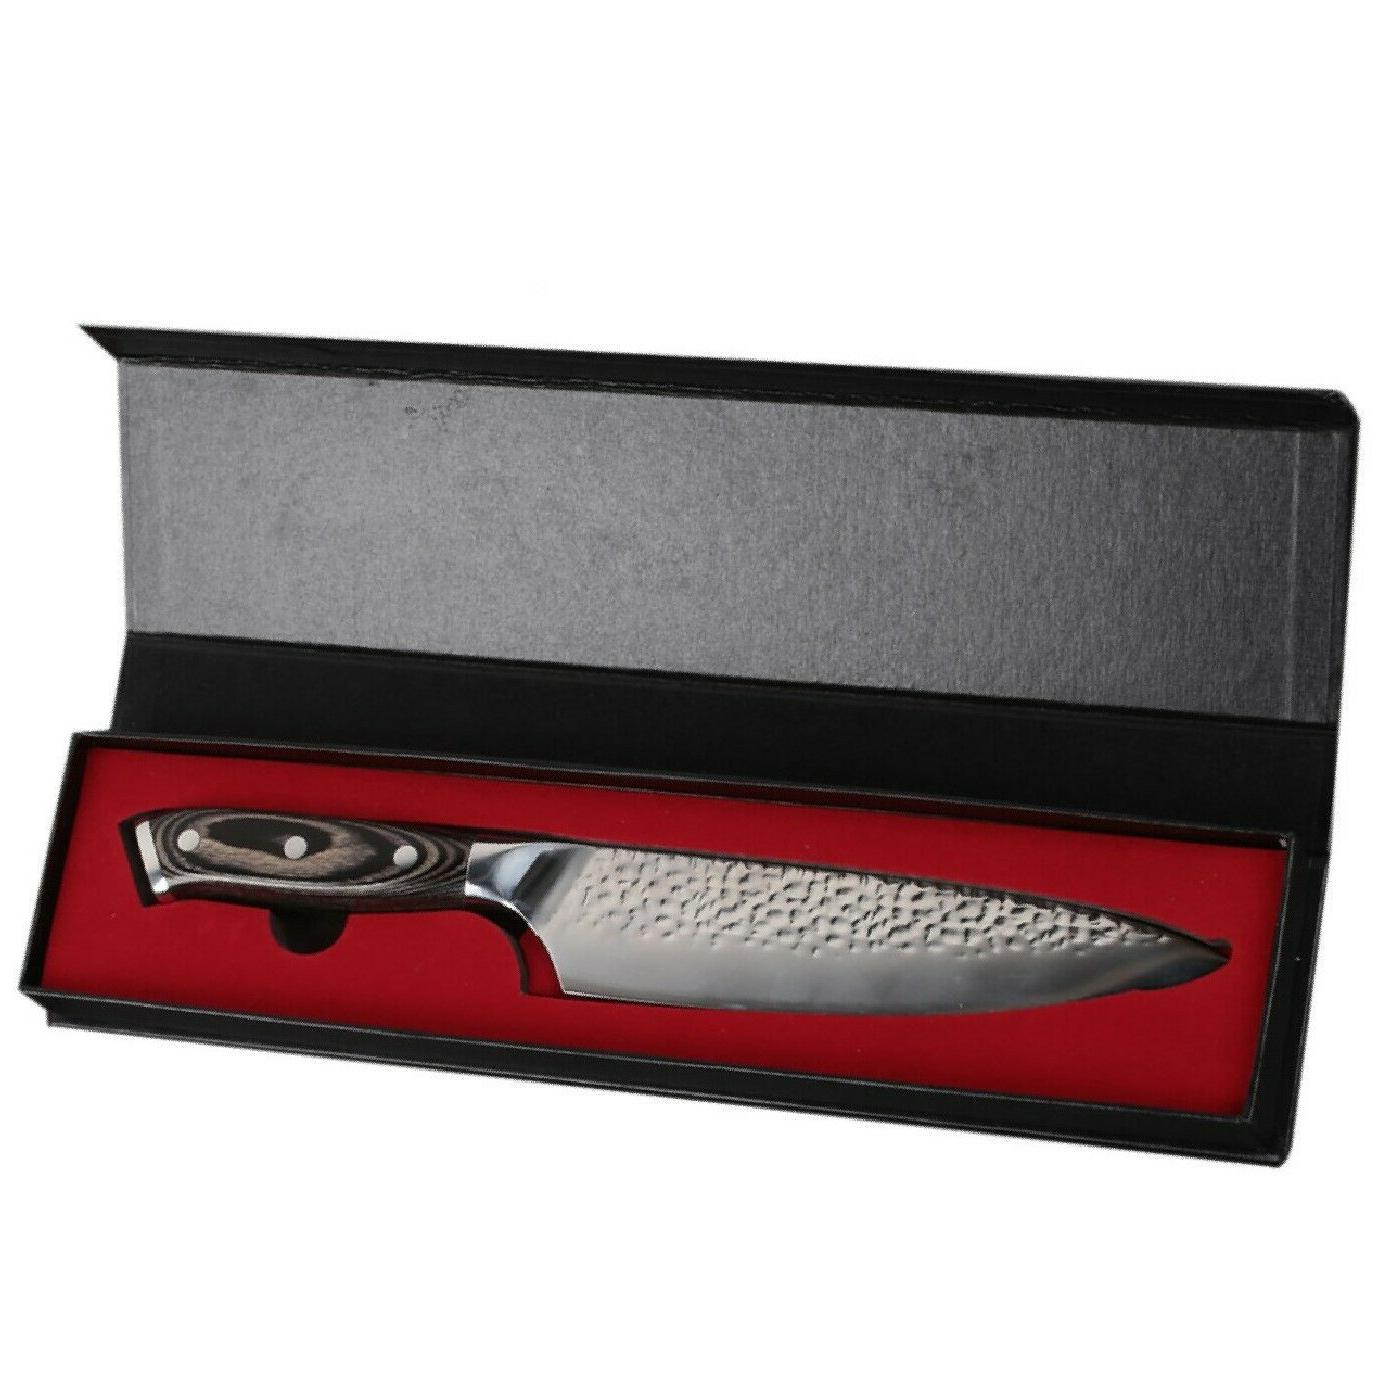 8 inch professional chef knives german steel